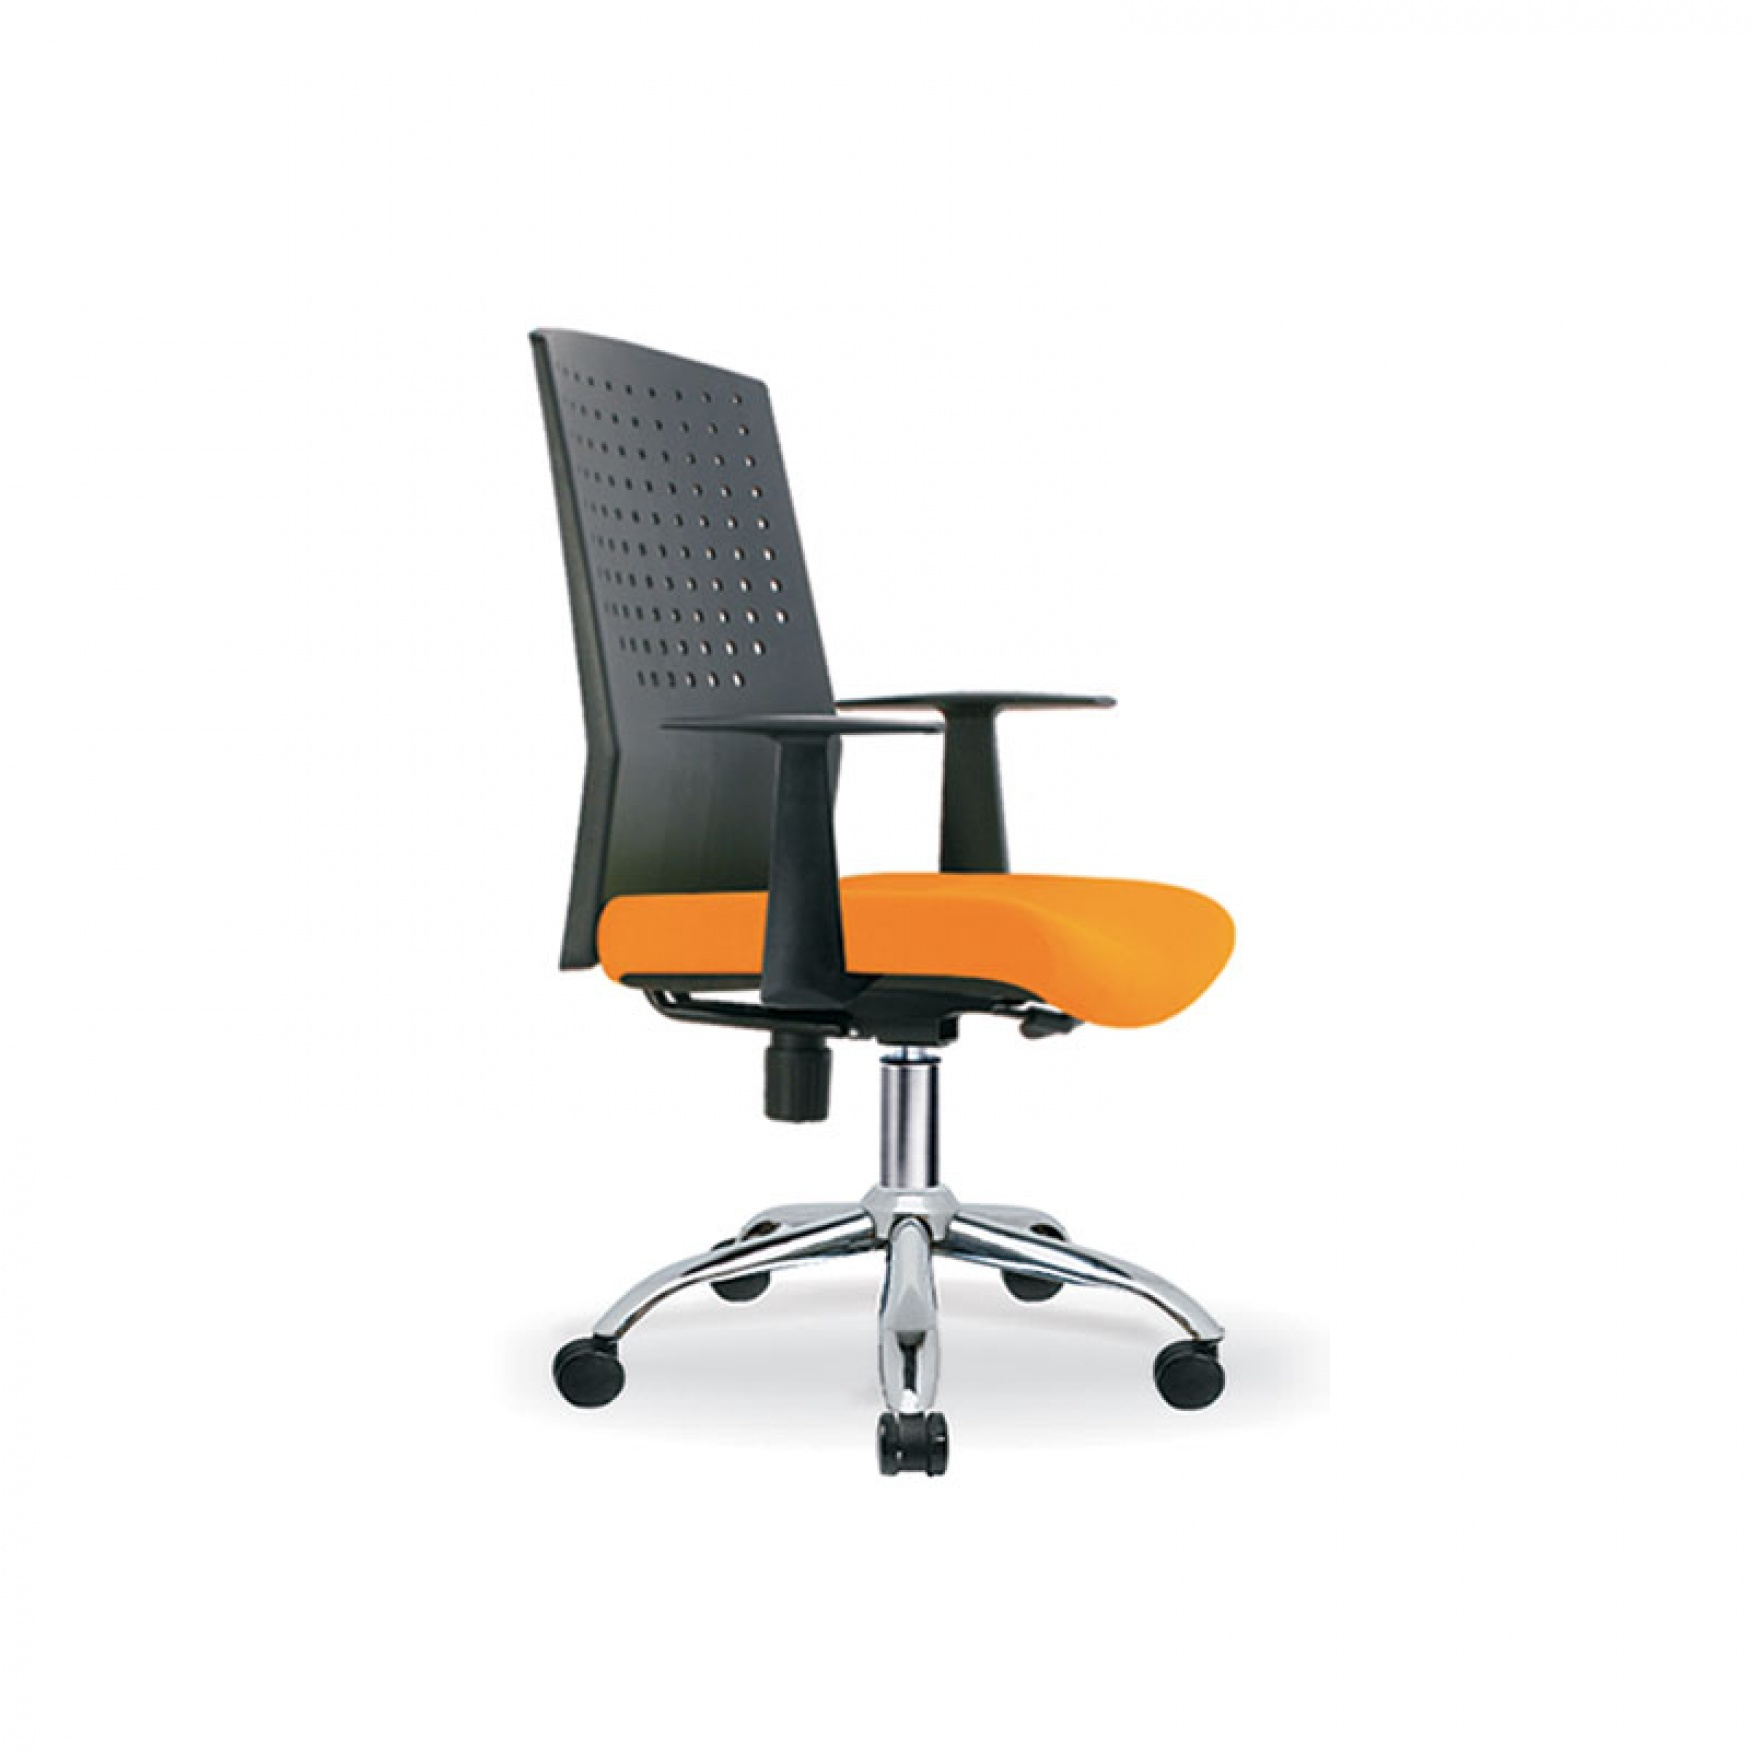 vimax 2 cr oscar indachi office chairs office products